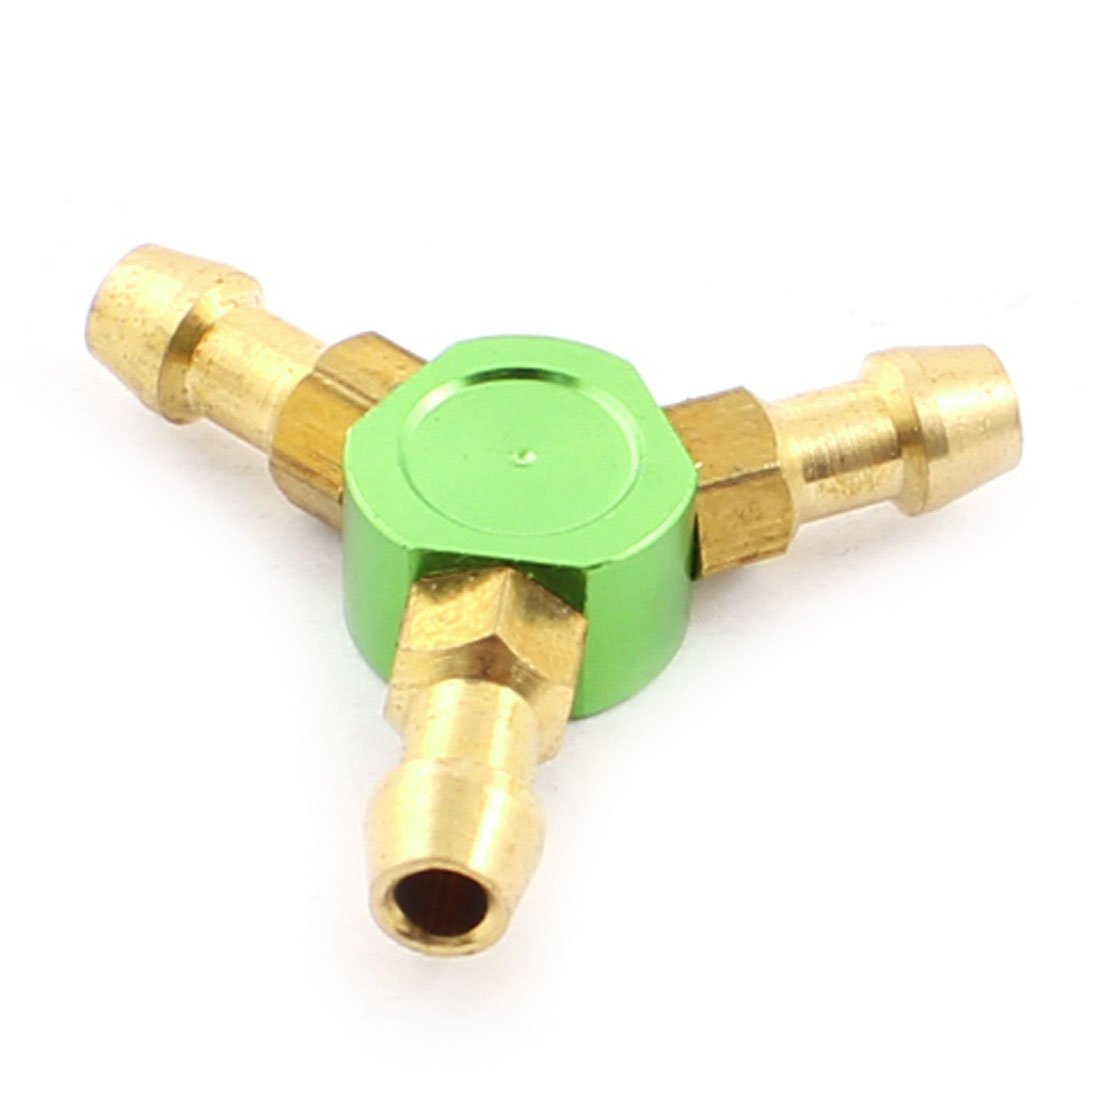 2.5mm x 3.5mm x 21mm Green Y-Shaped Water Fuel Air Splitter for RC Boat